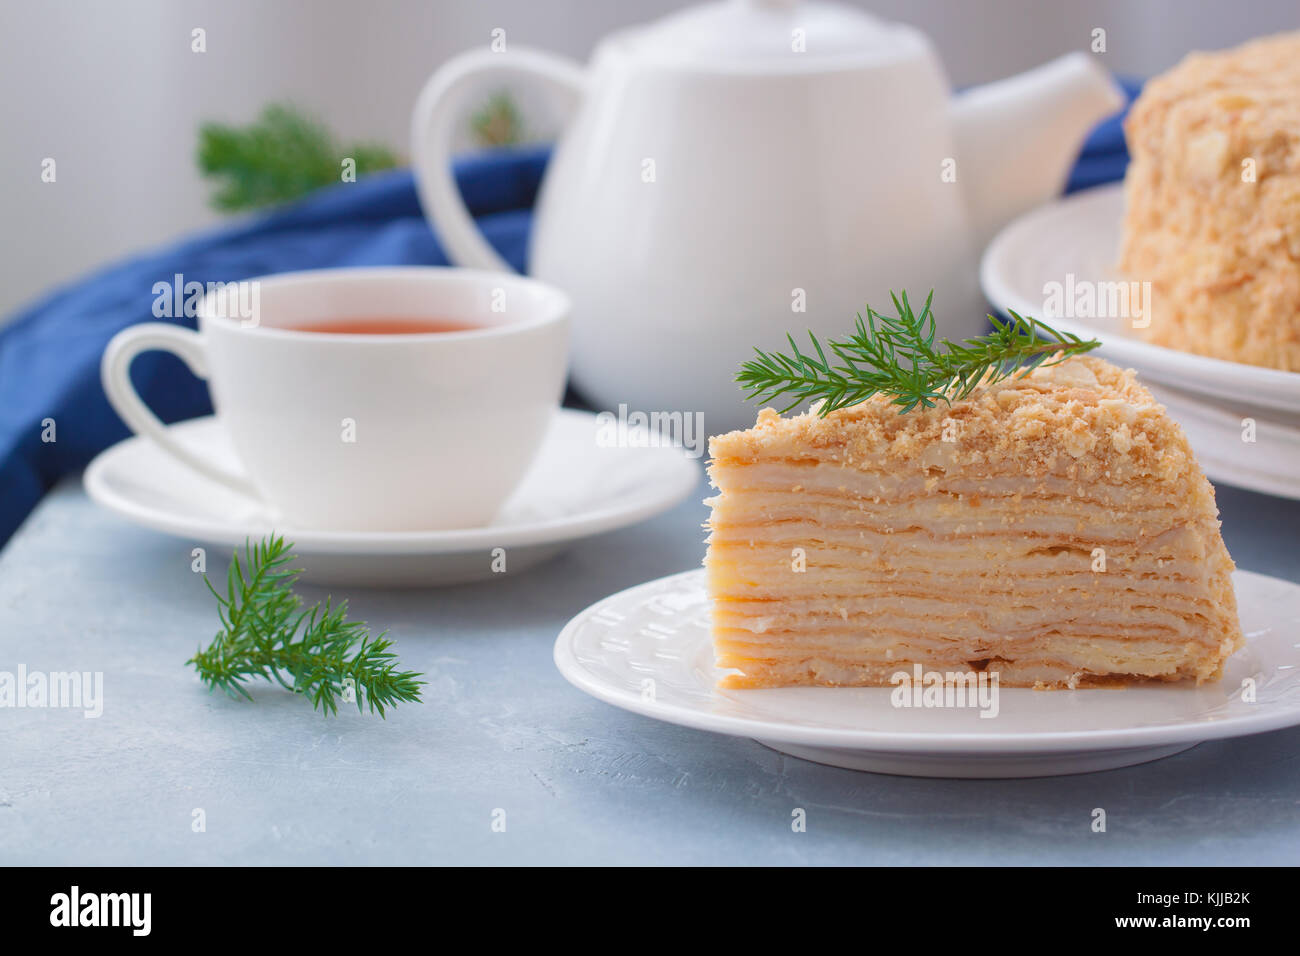 Round multi-layered cake Napoleon with custard, on a light-blue table background. Selective focus. Russian cuisine. - Stock Image